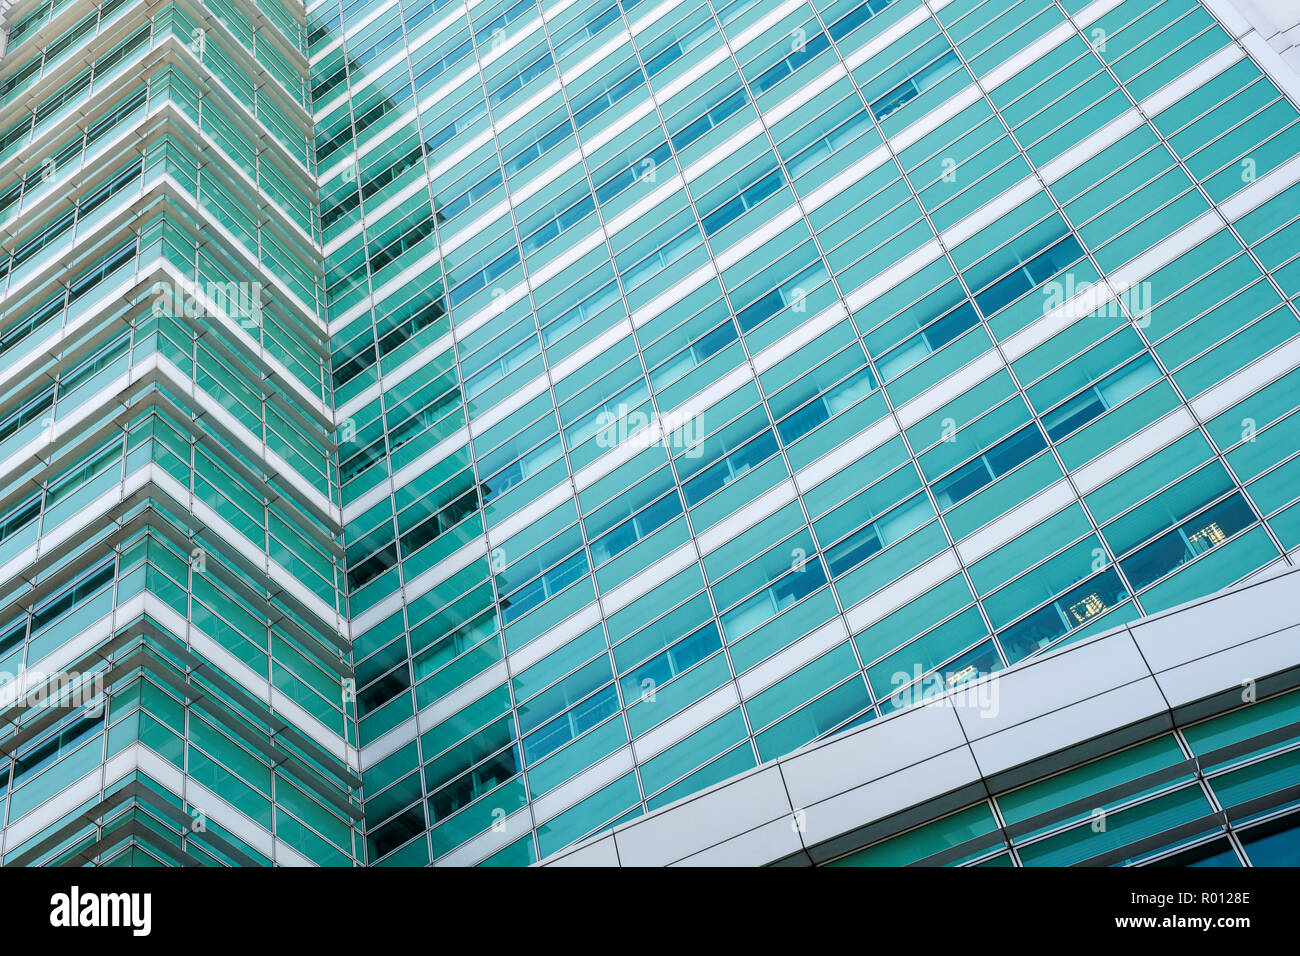 University college hospital building abstract, London, England - Stock Image